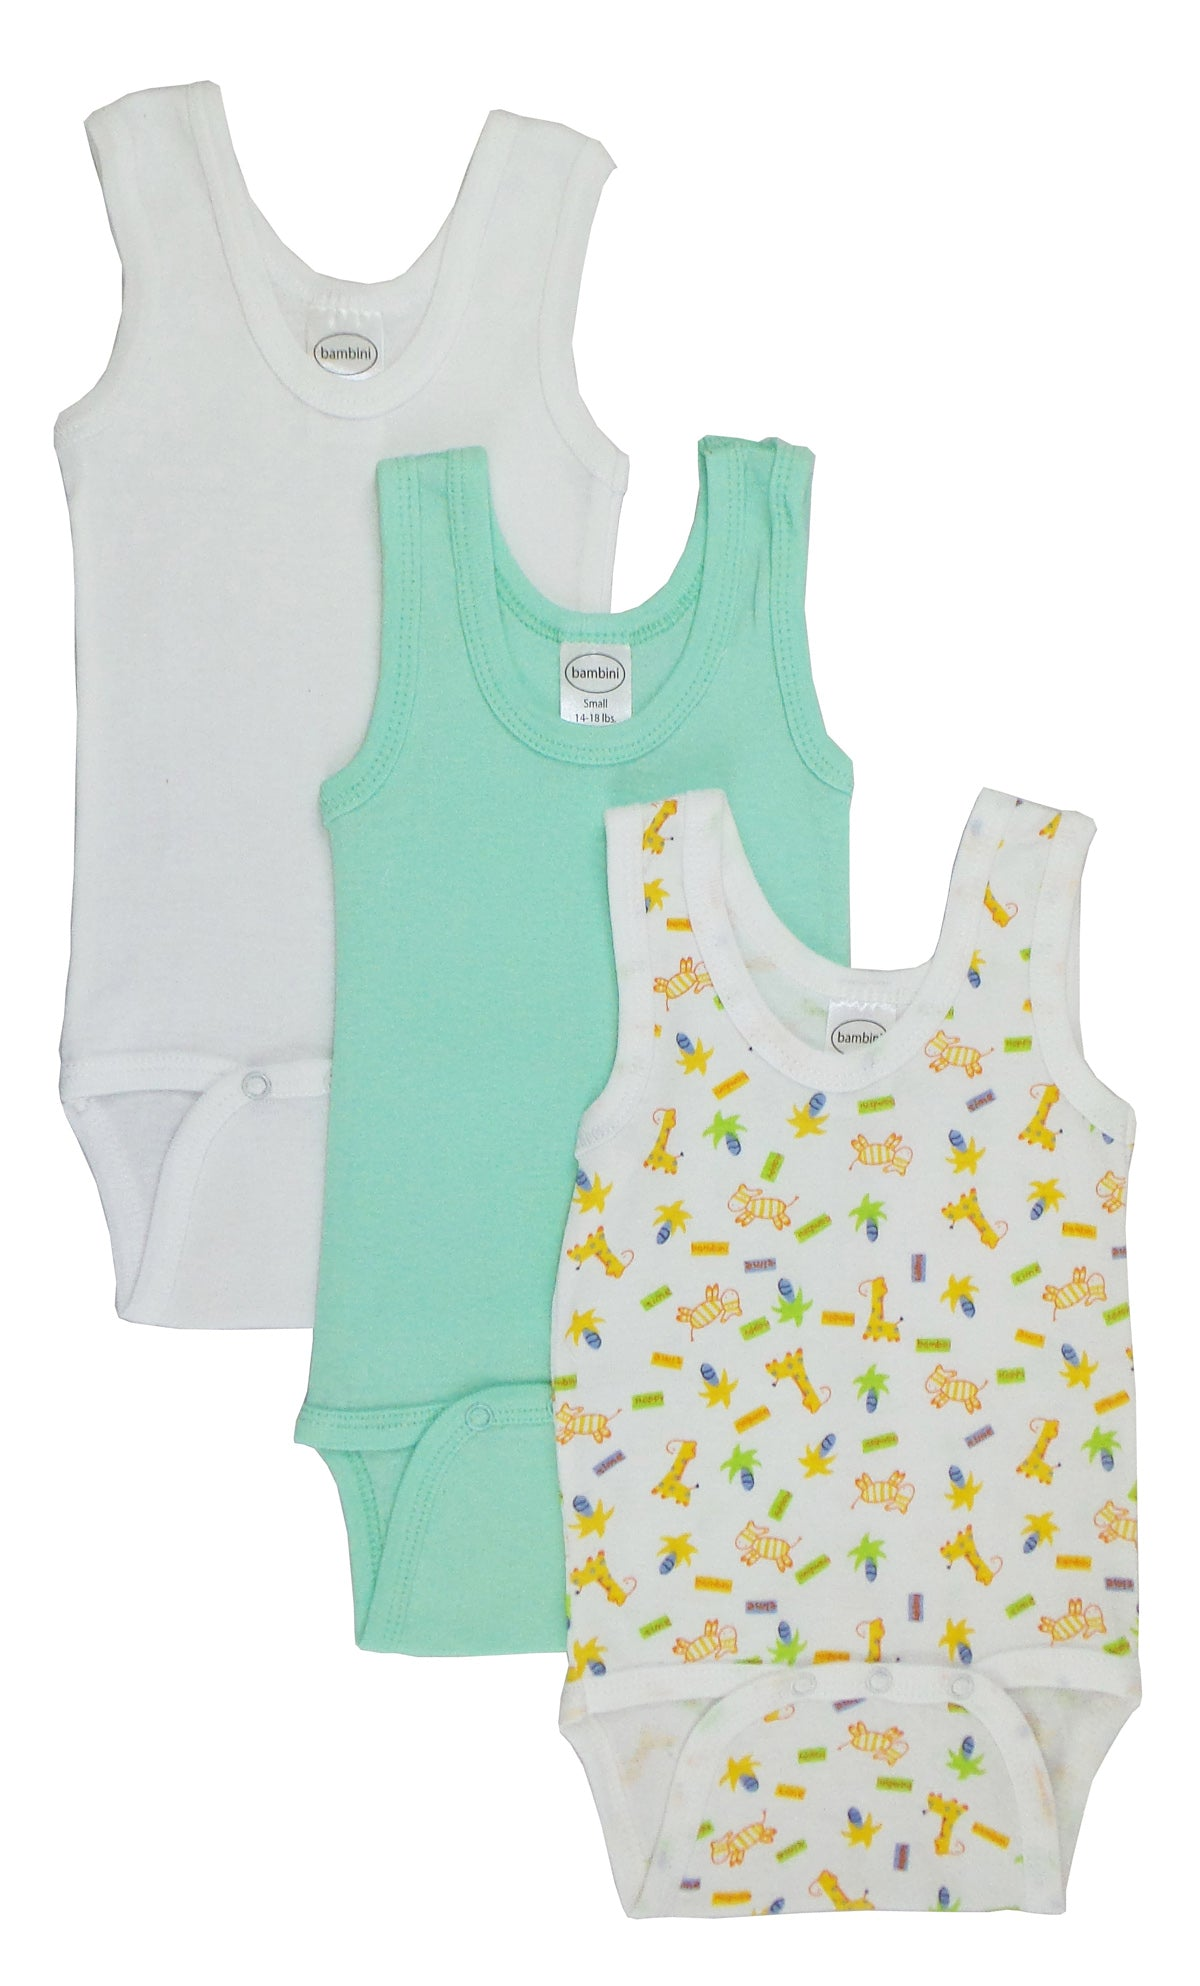 Bambini Boys' Printed Tank Top